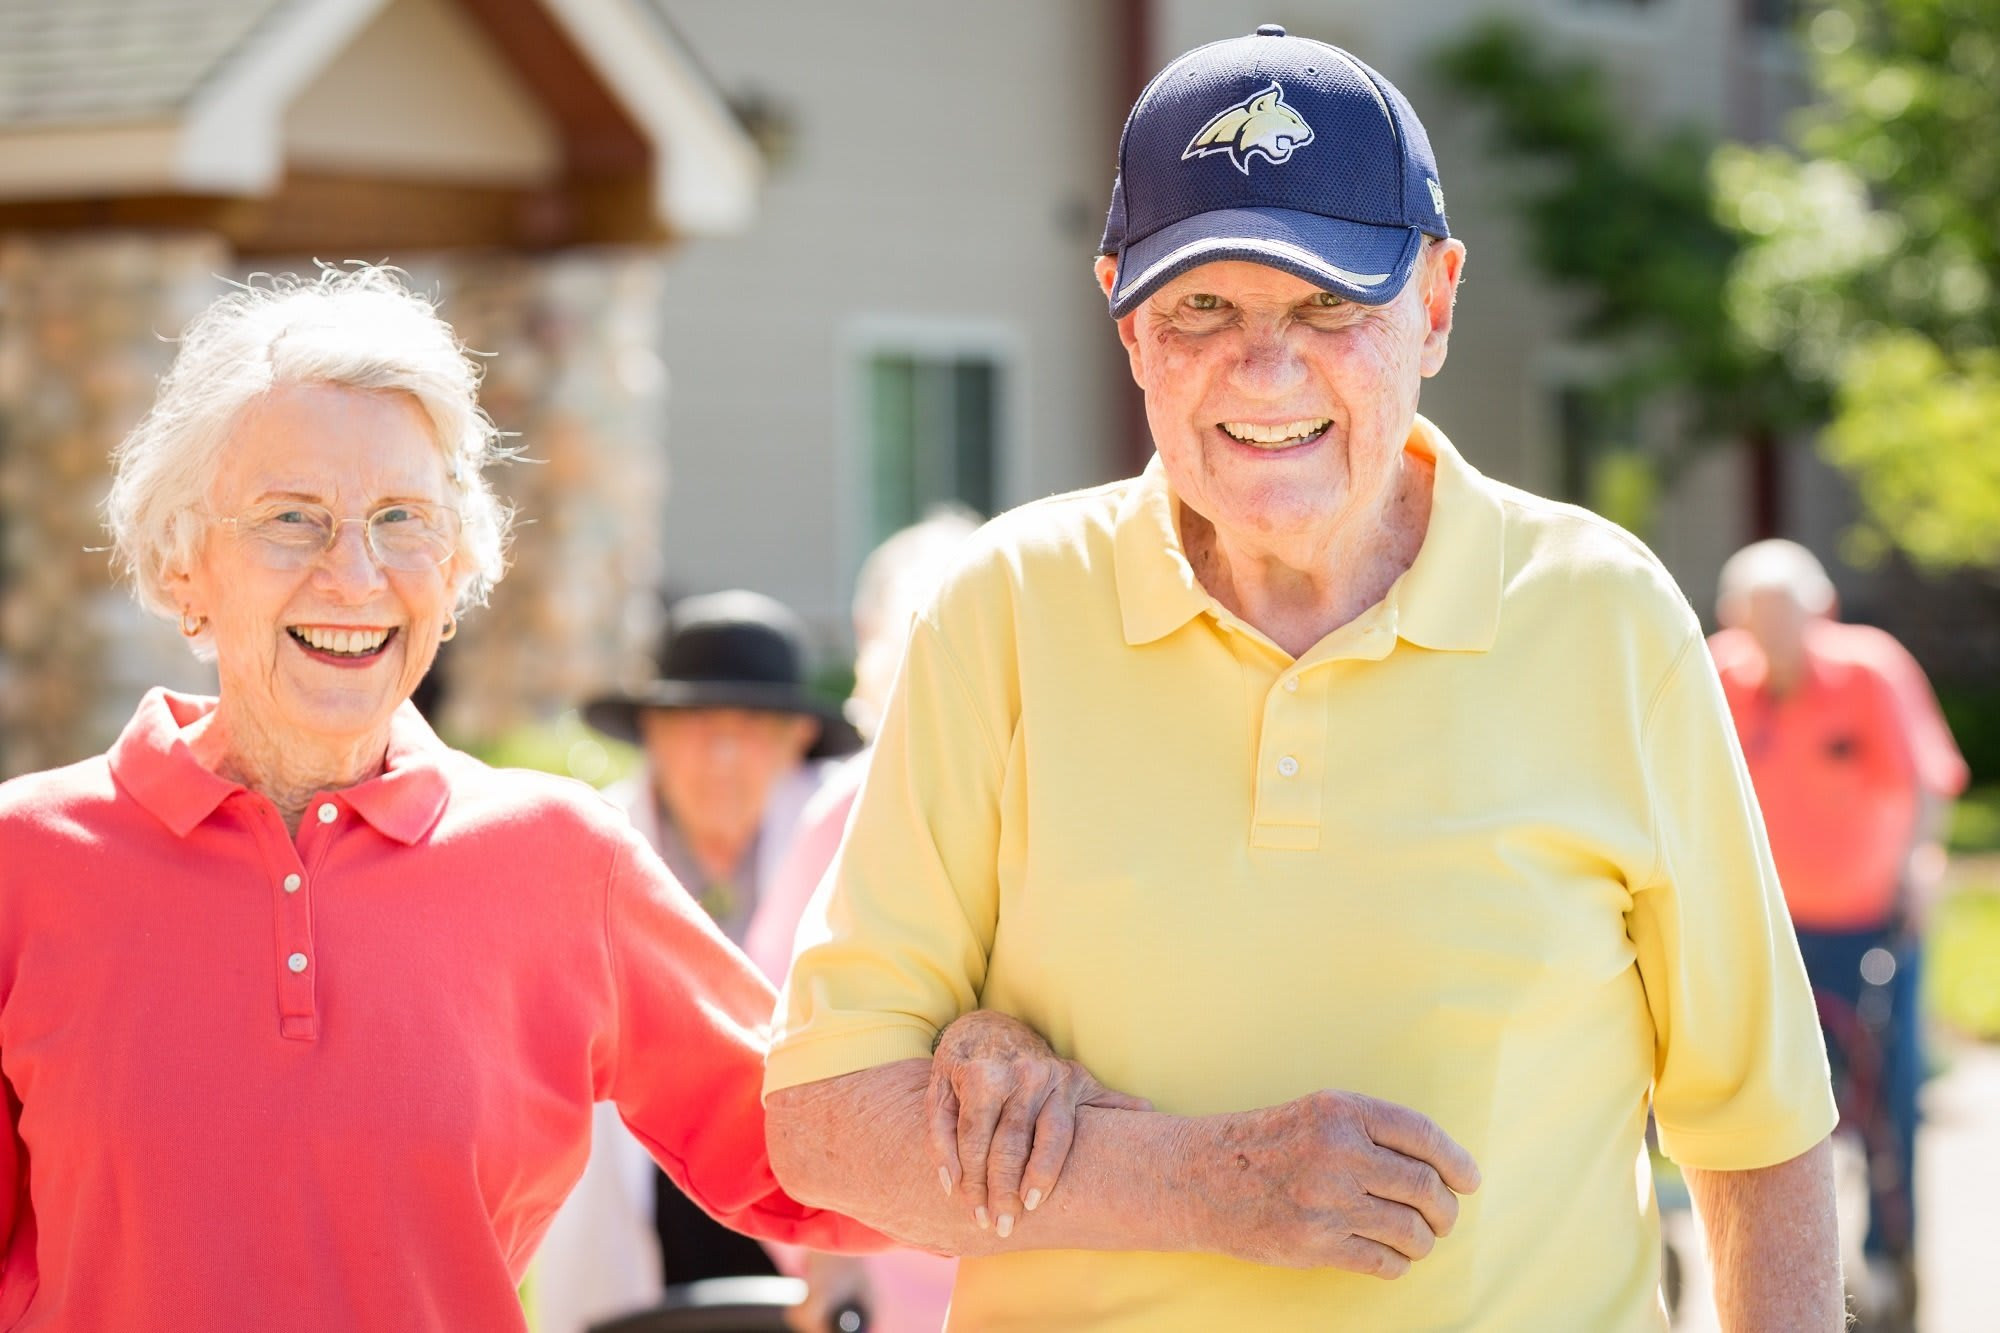 Residents enjoy a walk outside together in Whitefish